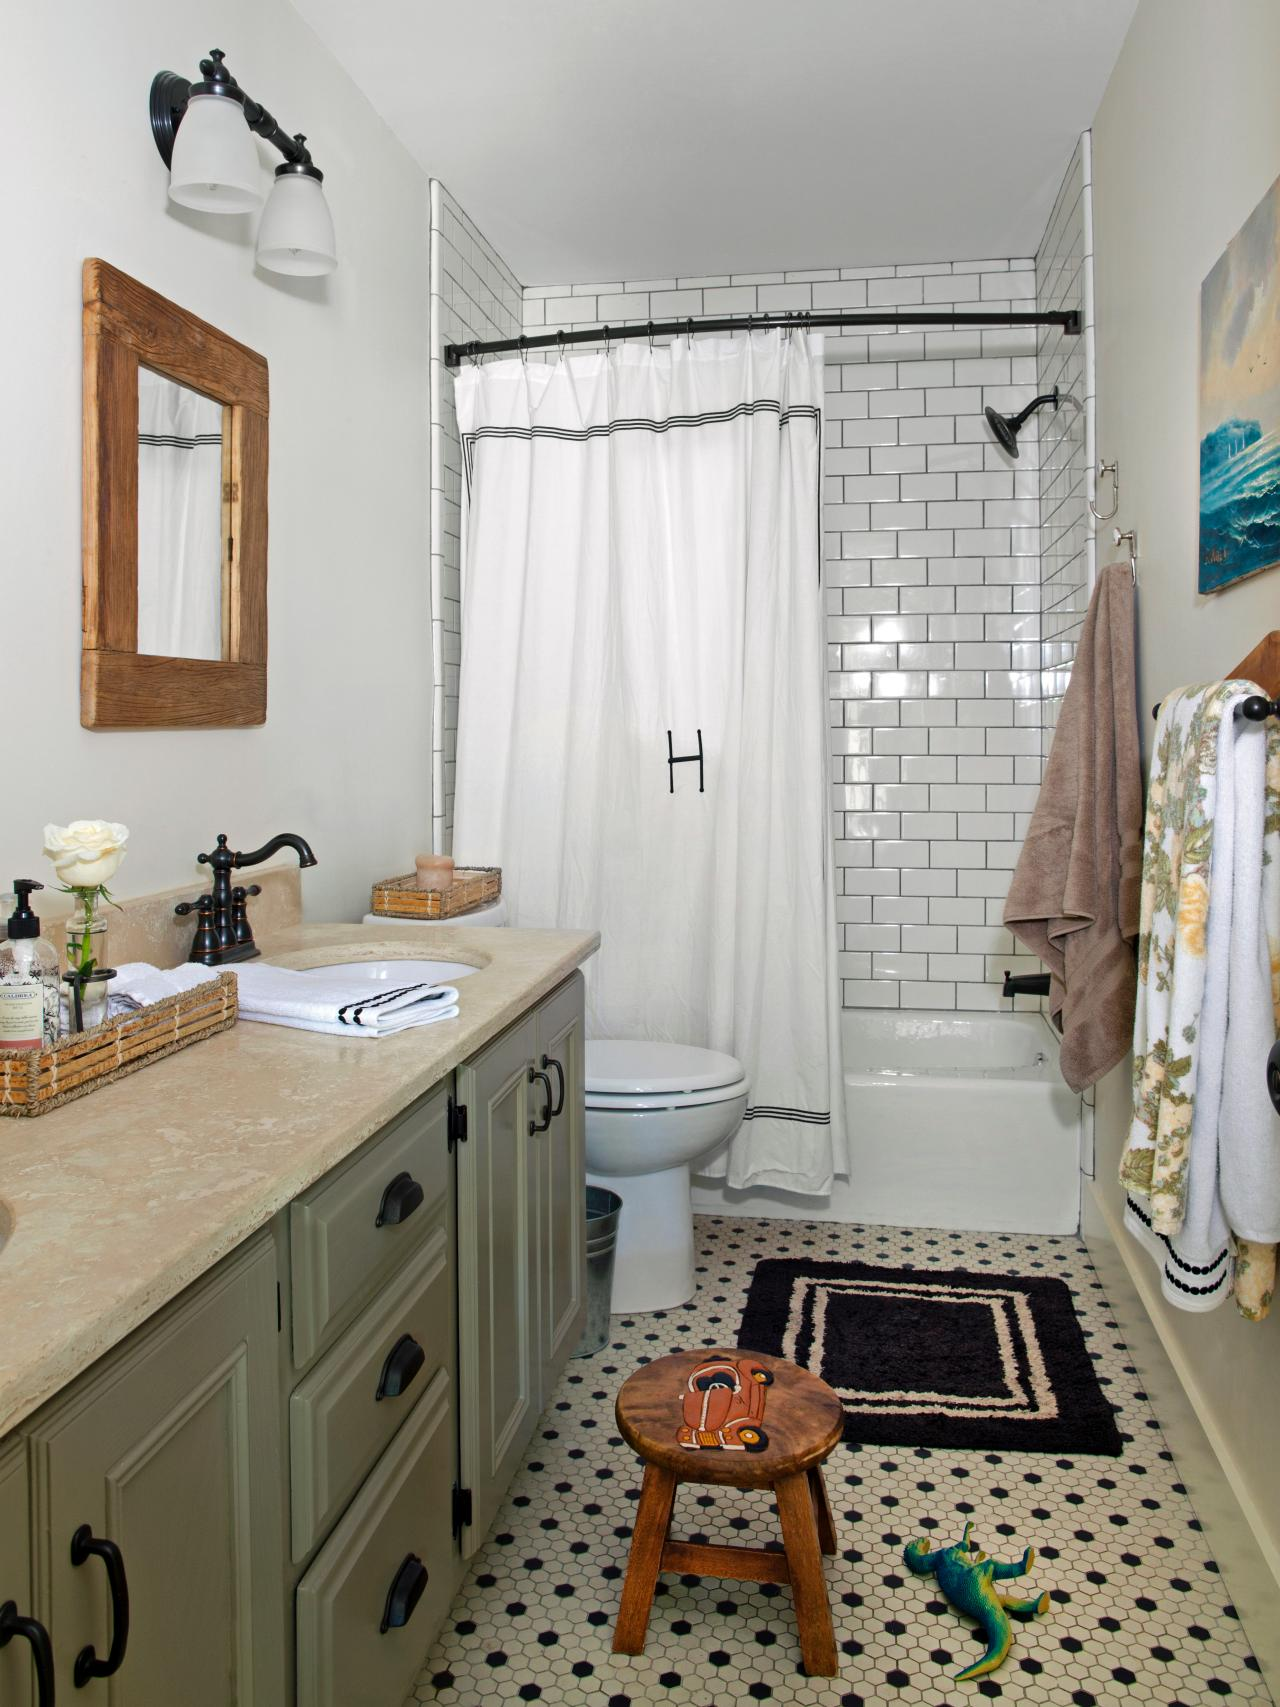 DP_Darnell-Cottage-Boys-Bathroom_s3x4.jpg.rend.hgtvcom.1280.1707